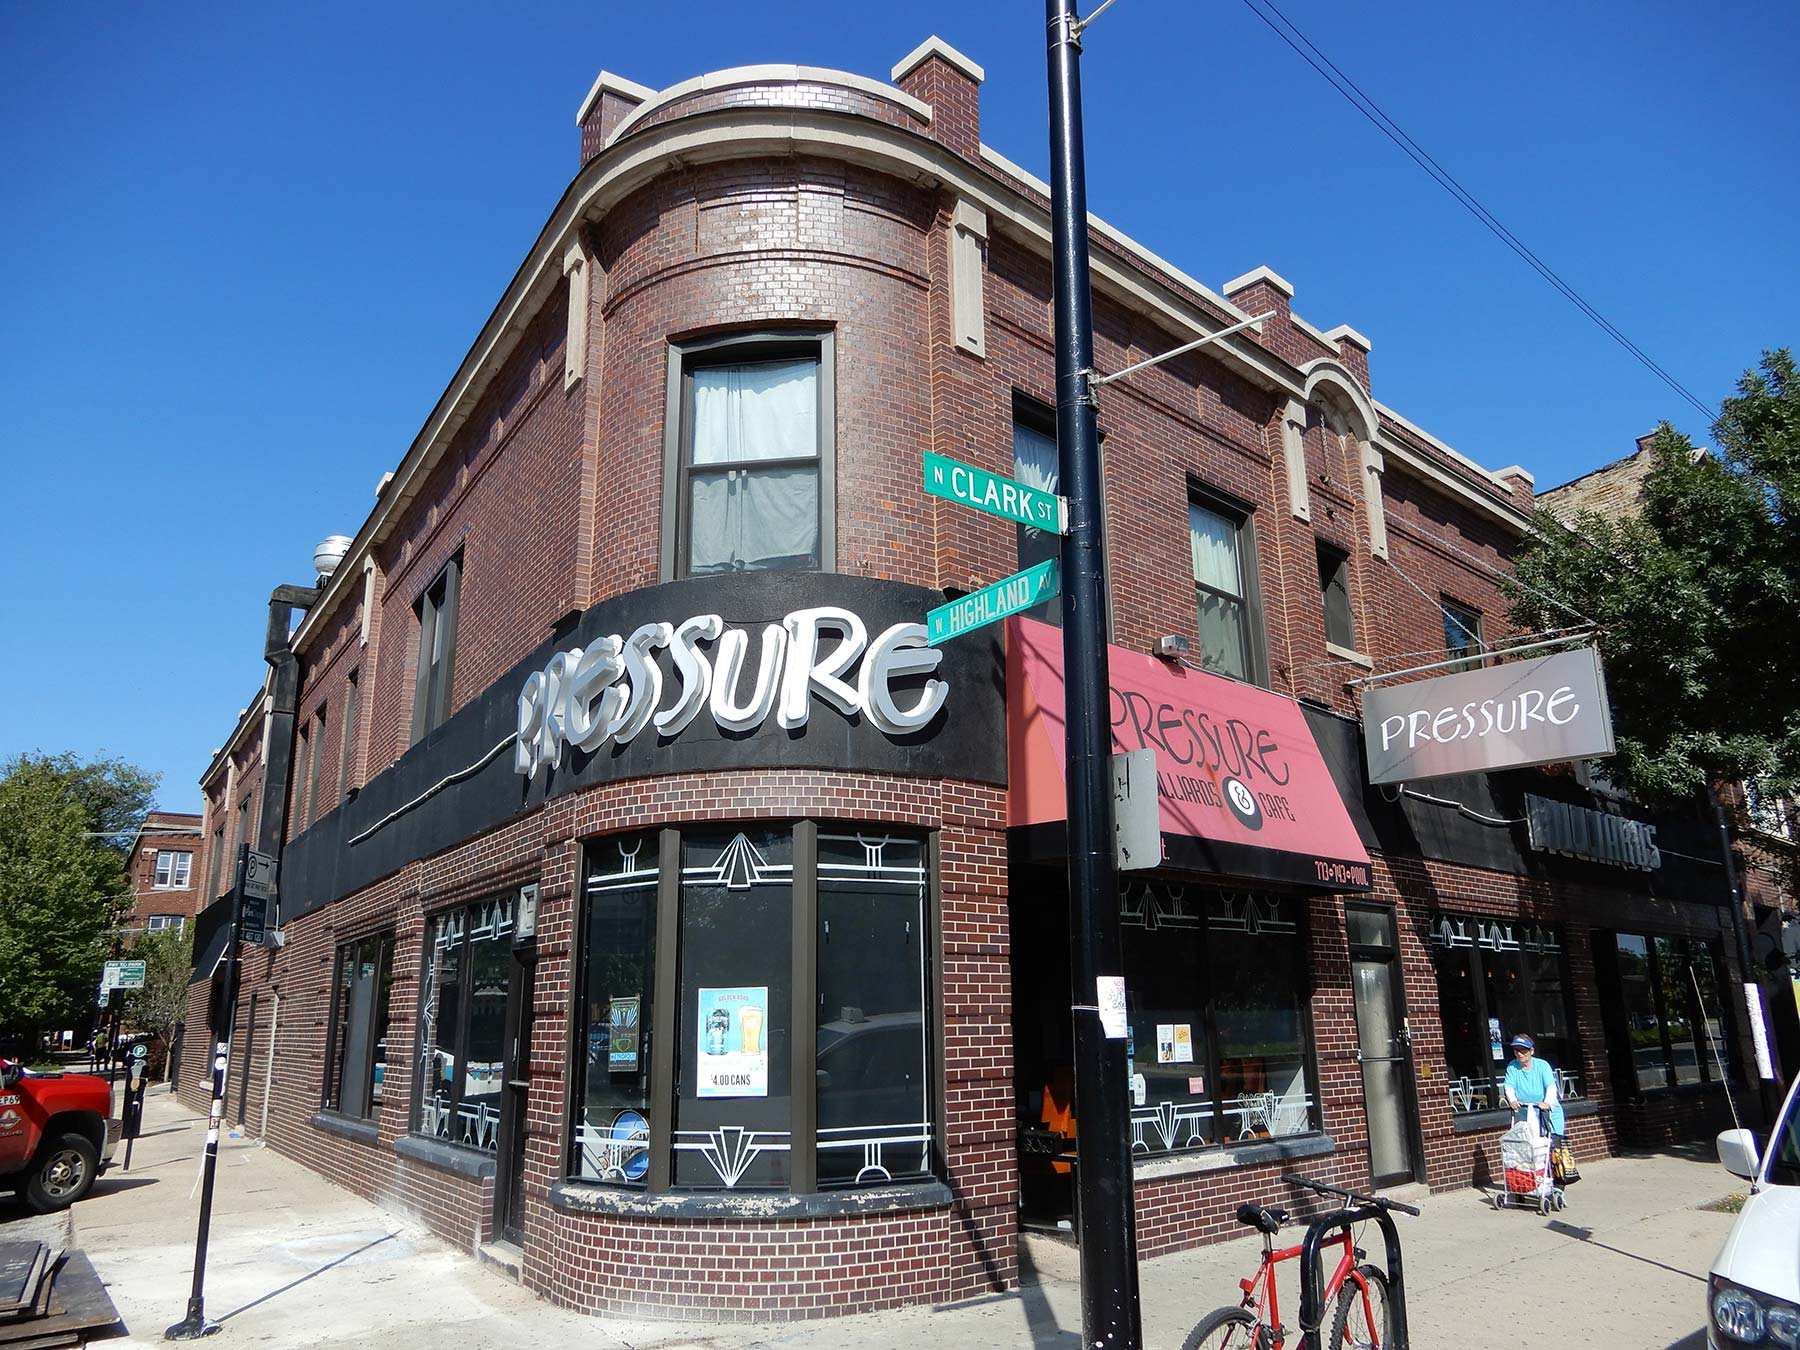 Norman designed this building at 6318-6320 N. Clark St. in 1909 to house a saloon with flats above. Photo by Julia Bachrach.